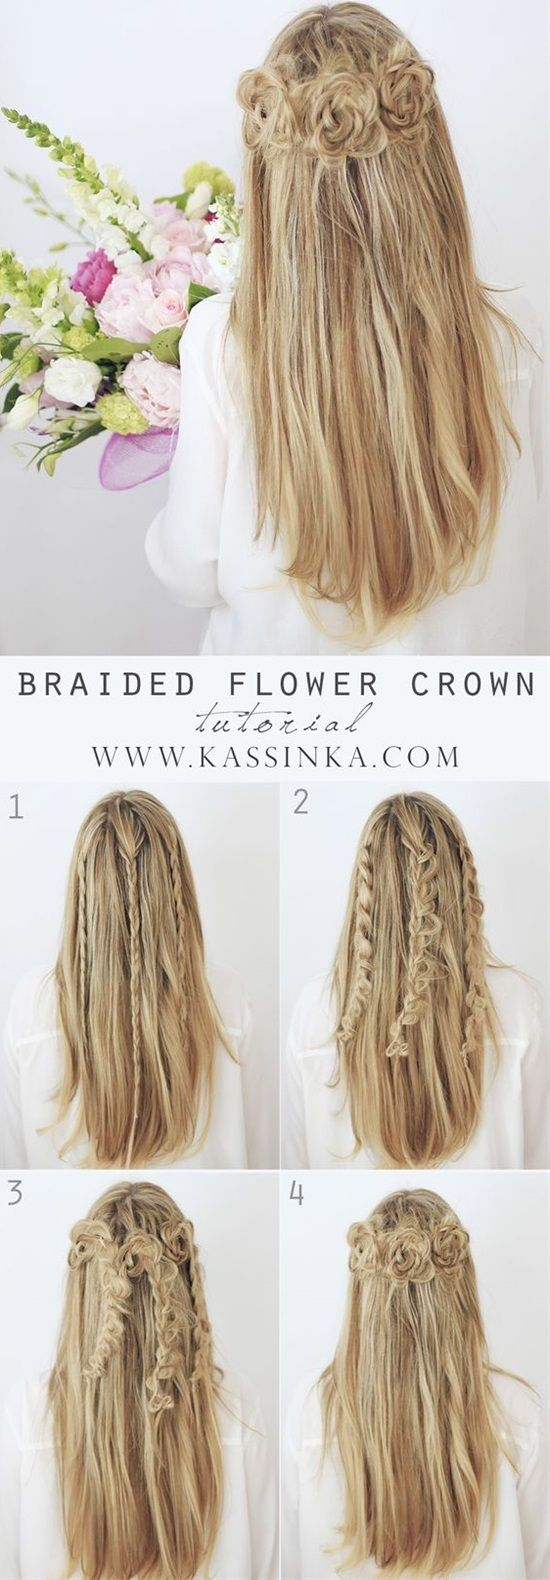 bold u unique hairstyle tutorials you can do at home hair and